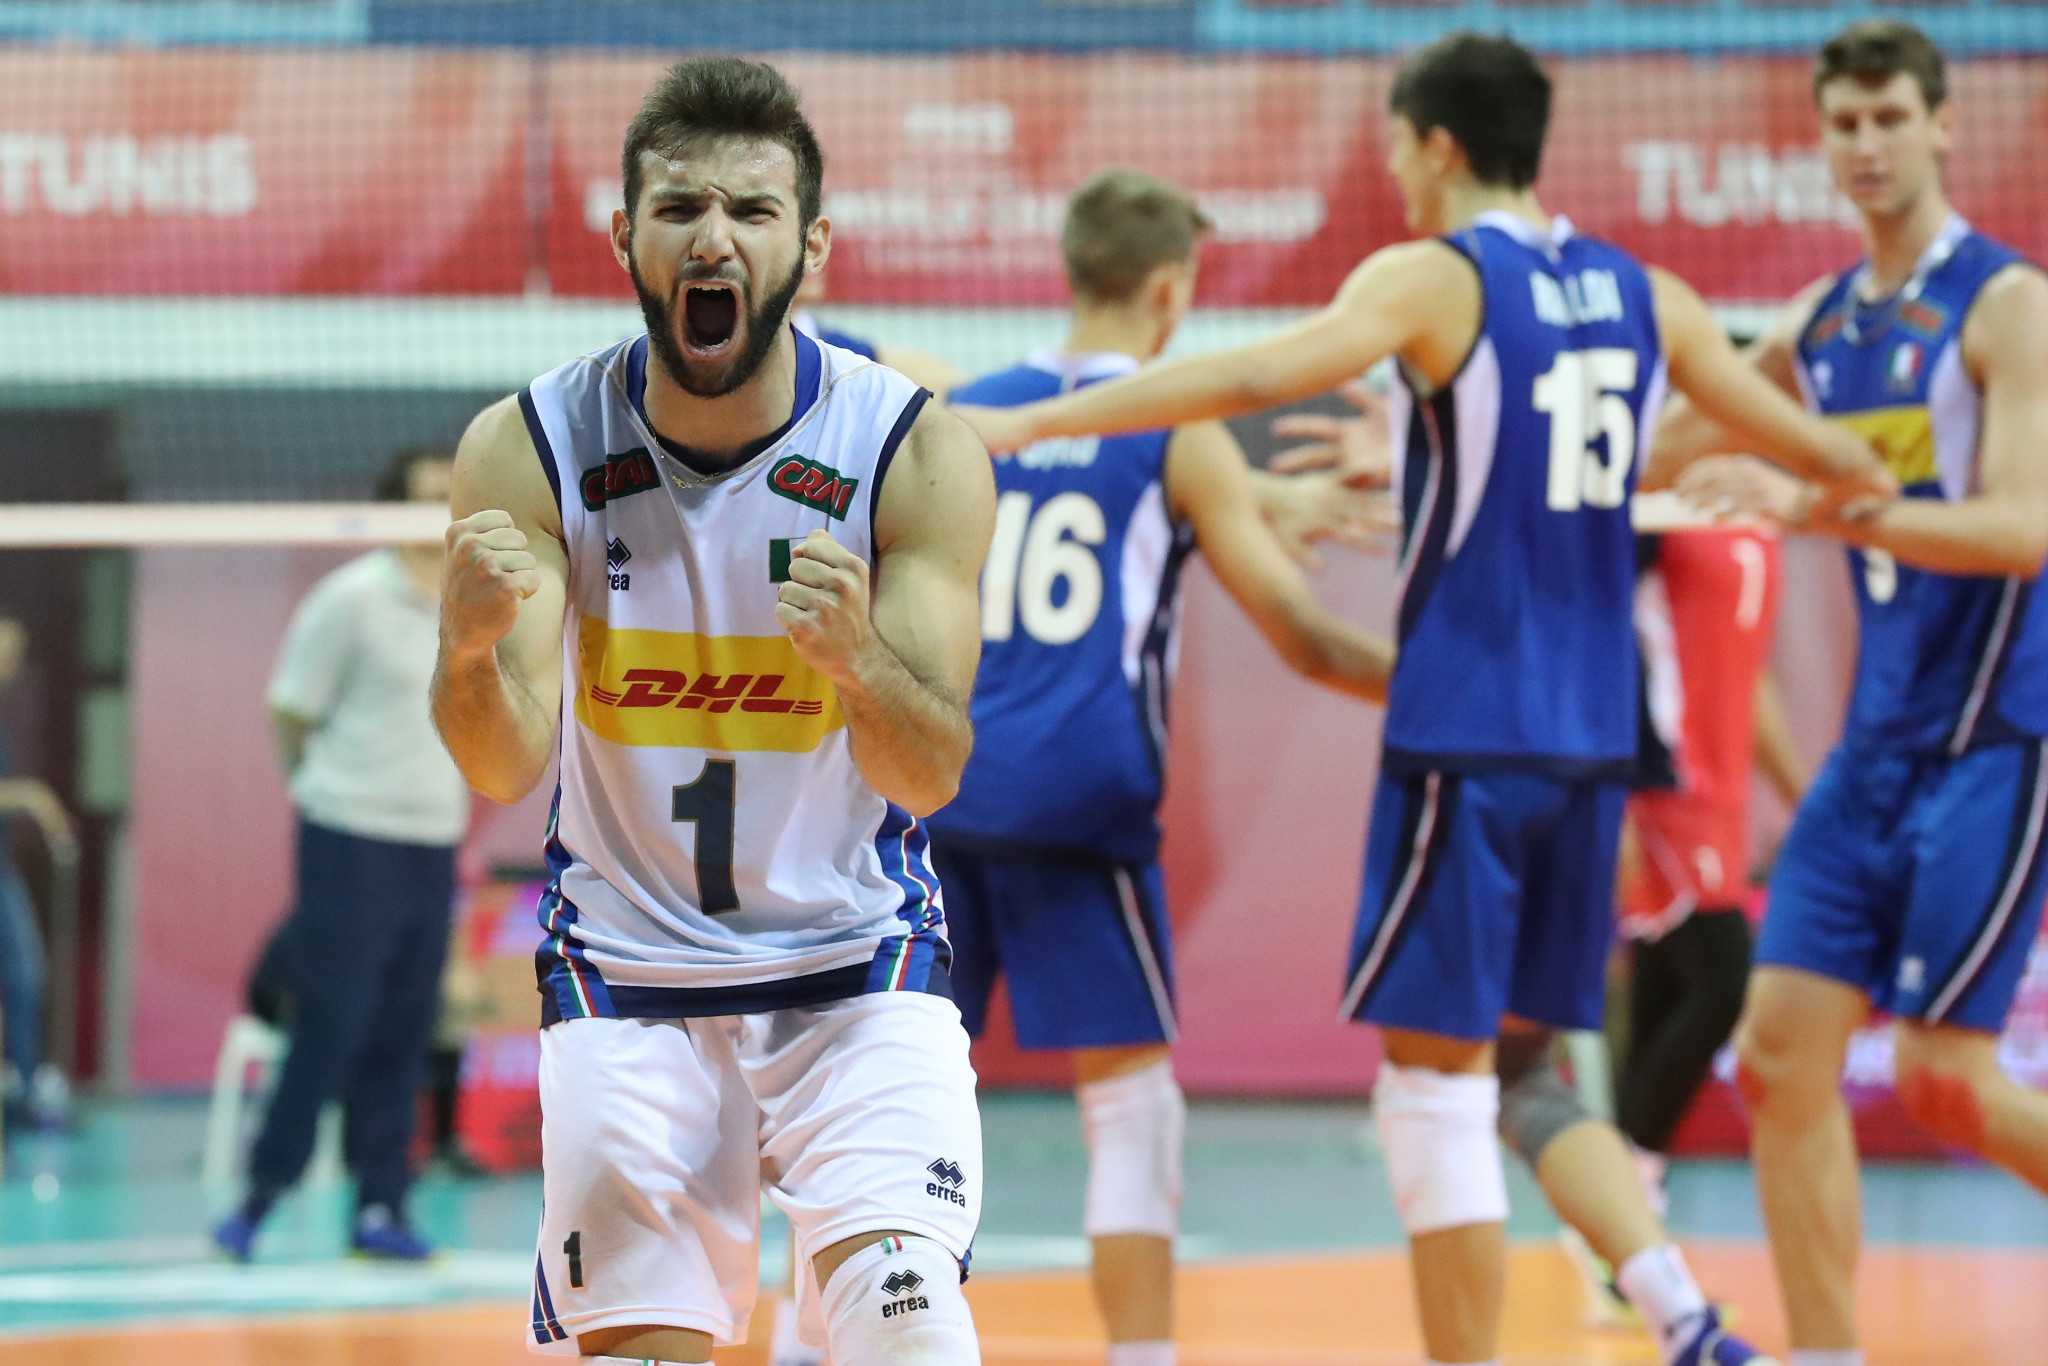 Italy's Damiano Catania celebrates as his team beats Egypt to reach the final in Tunis ©FIVB